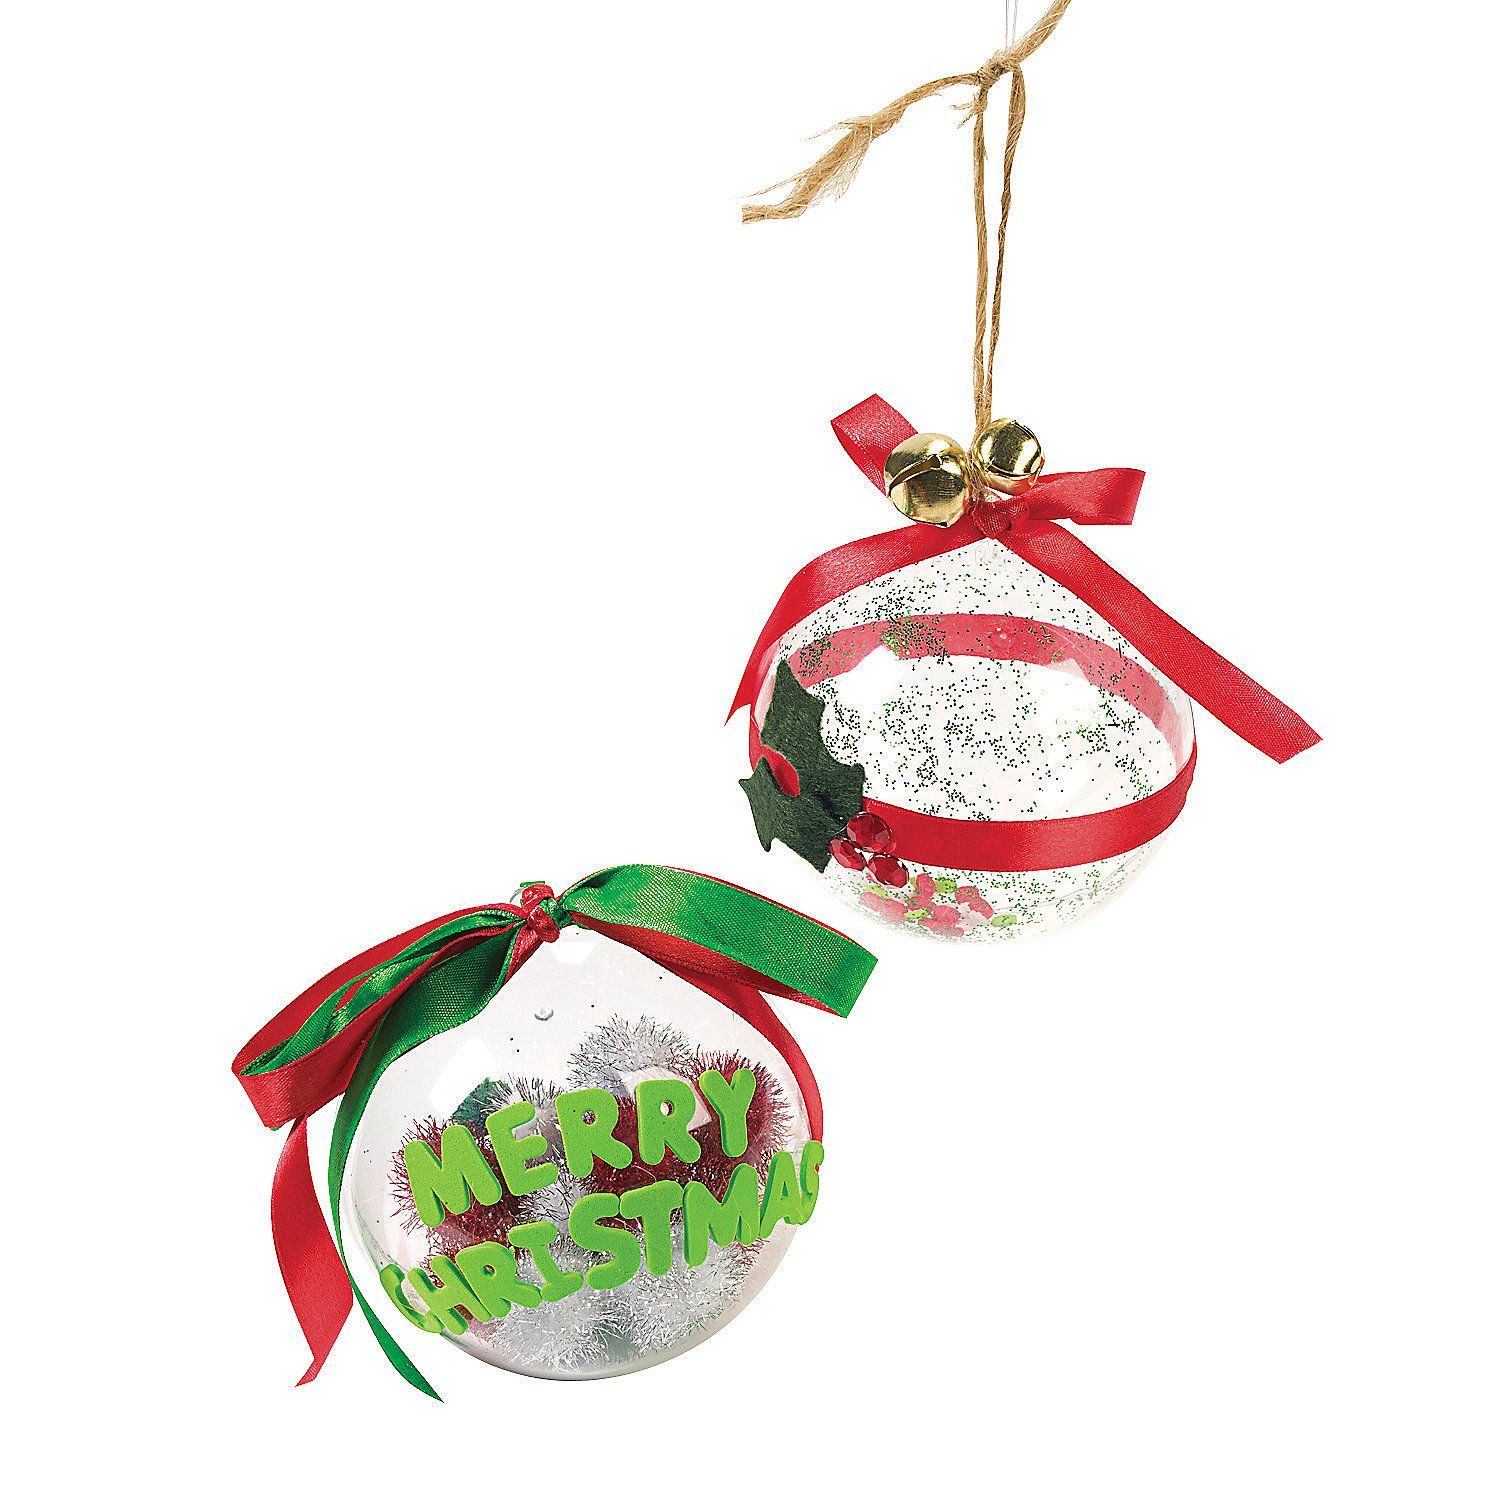 Design your own large clear ornaments the way to decorate your b856644a04f3d87424b2fc13373c89a4g solutioingenieria Choice Image